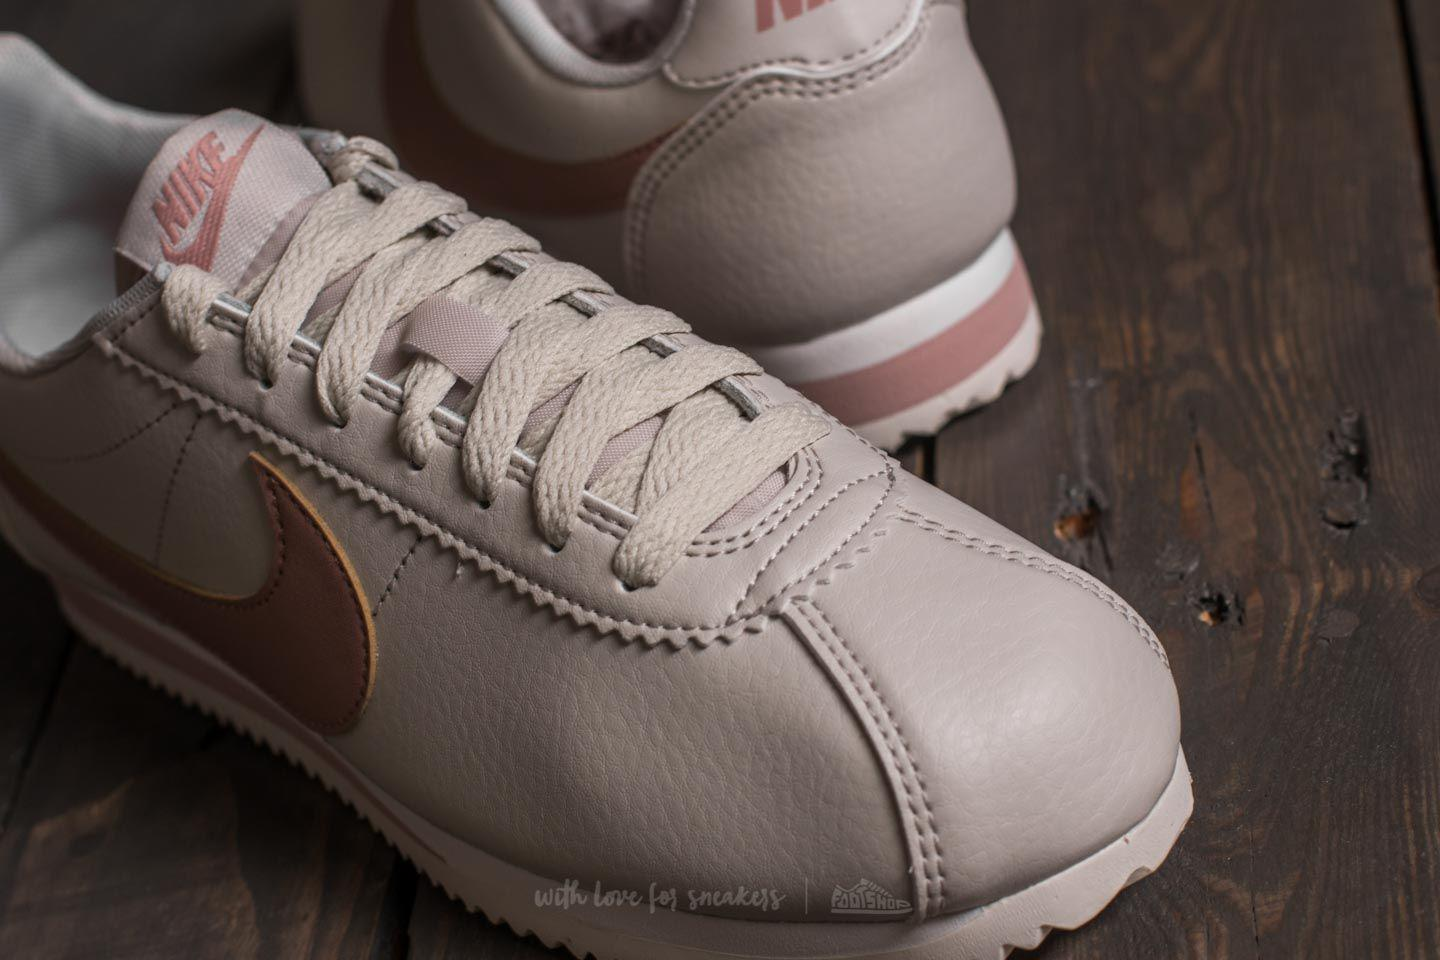 bfb7bb0d5 Lyst - Nike Wmns Classic Cortez Leather Light Bone  Particle Pink